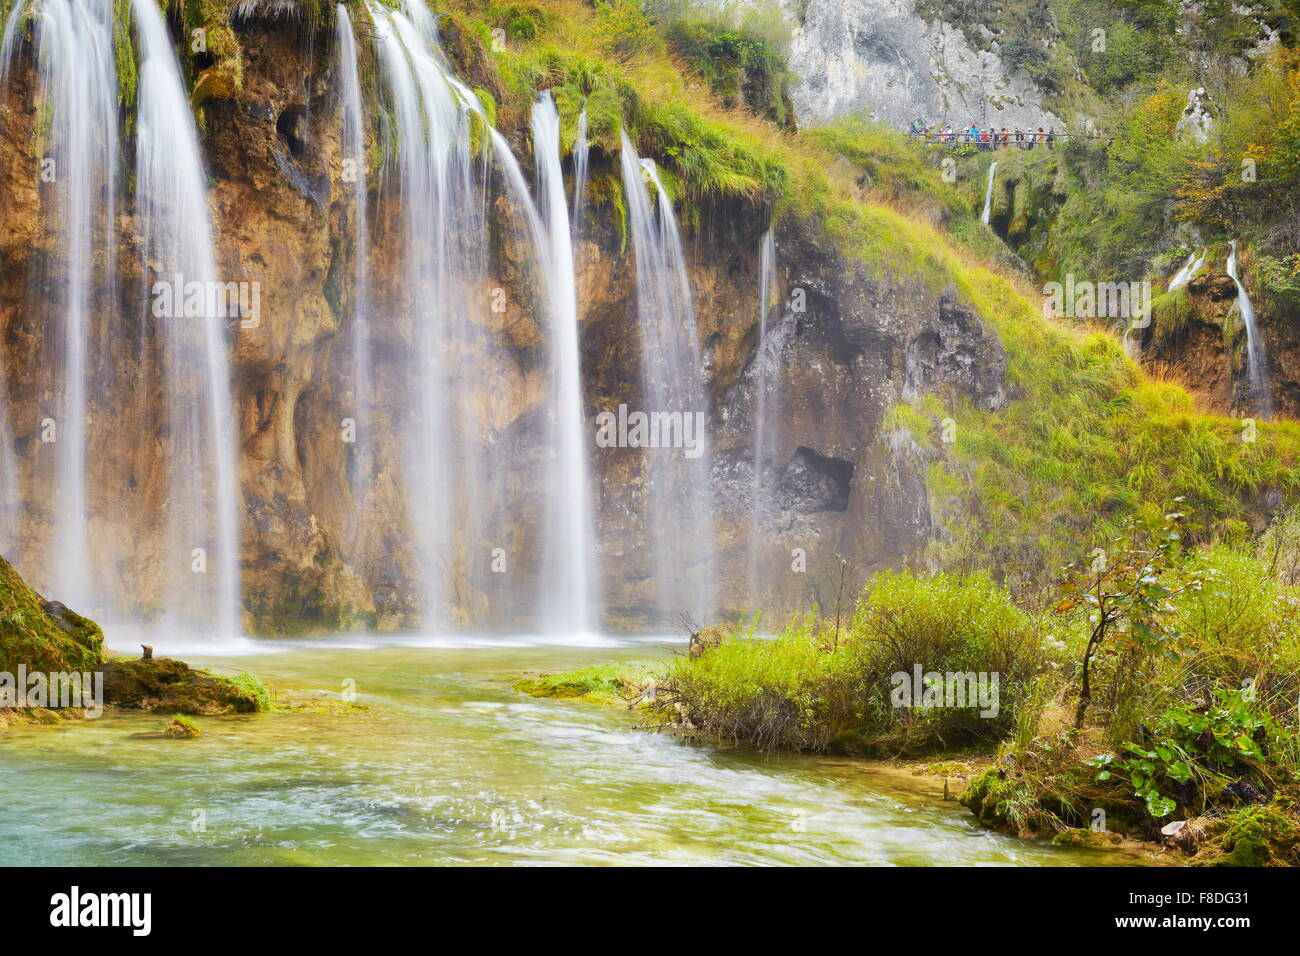 Waterfalls in Plitvice Lakes National Park, Croatia UNESCO - Stock Image